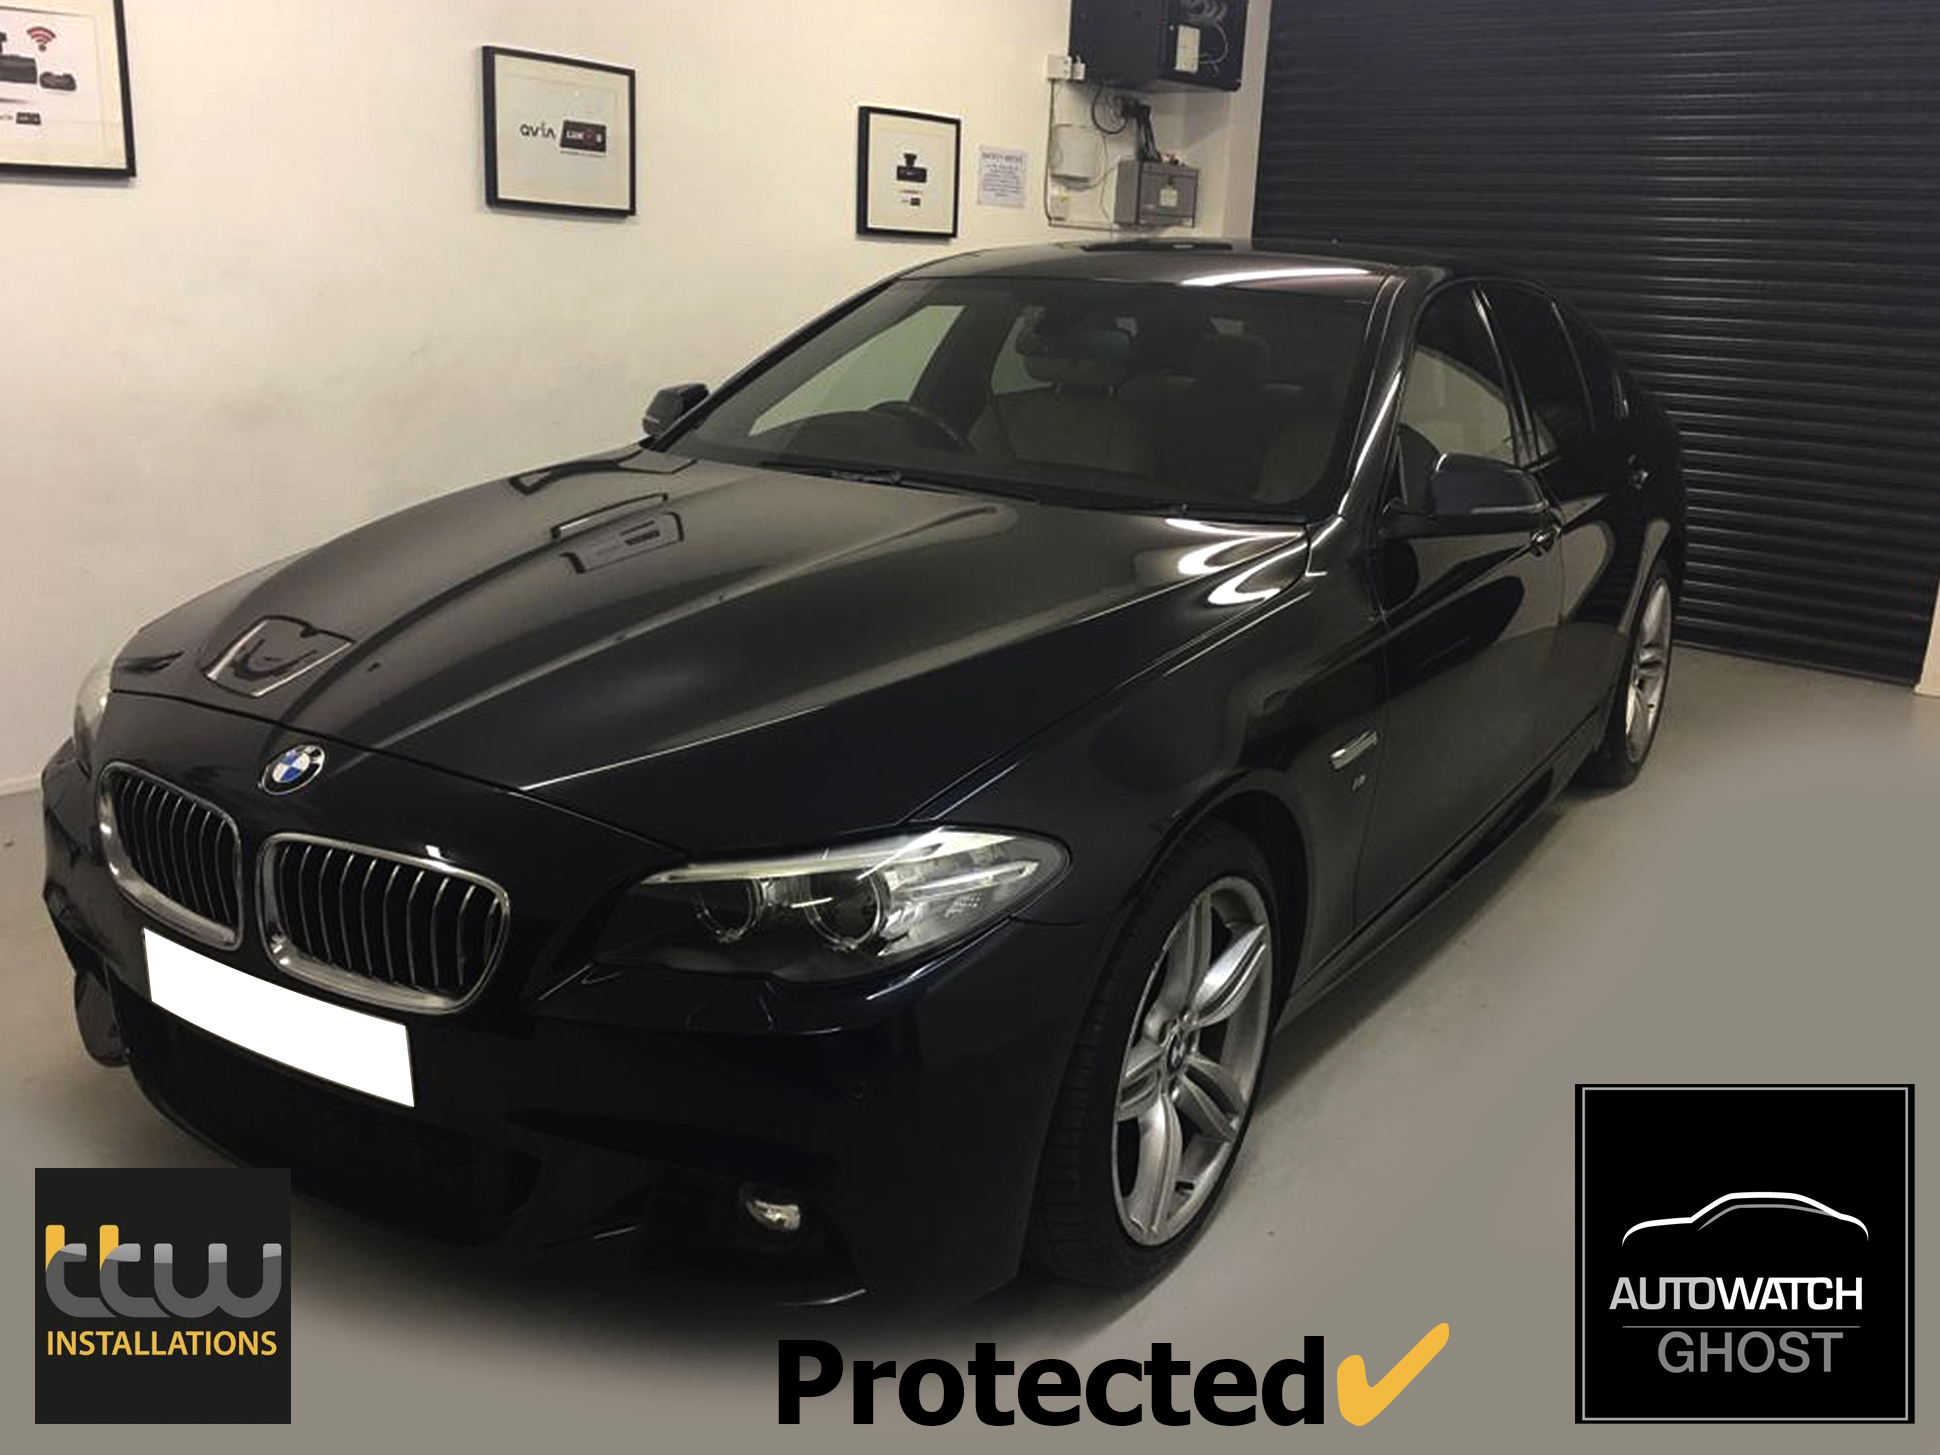 BMW 5 Series Autowatch Ghost 2 protected By TTW Installations